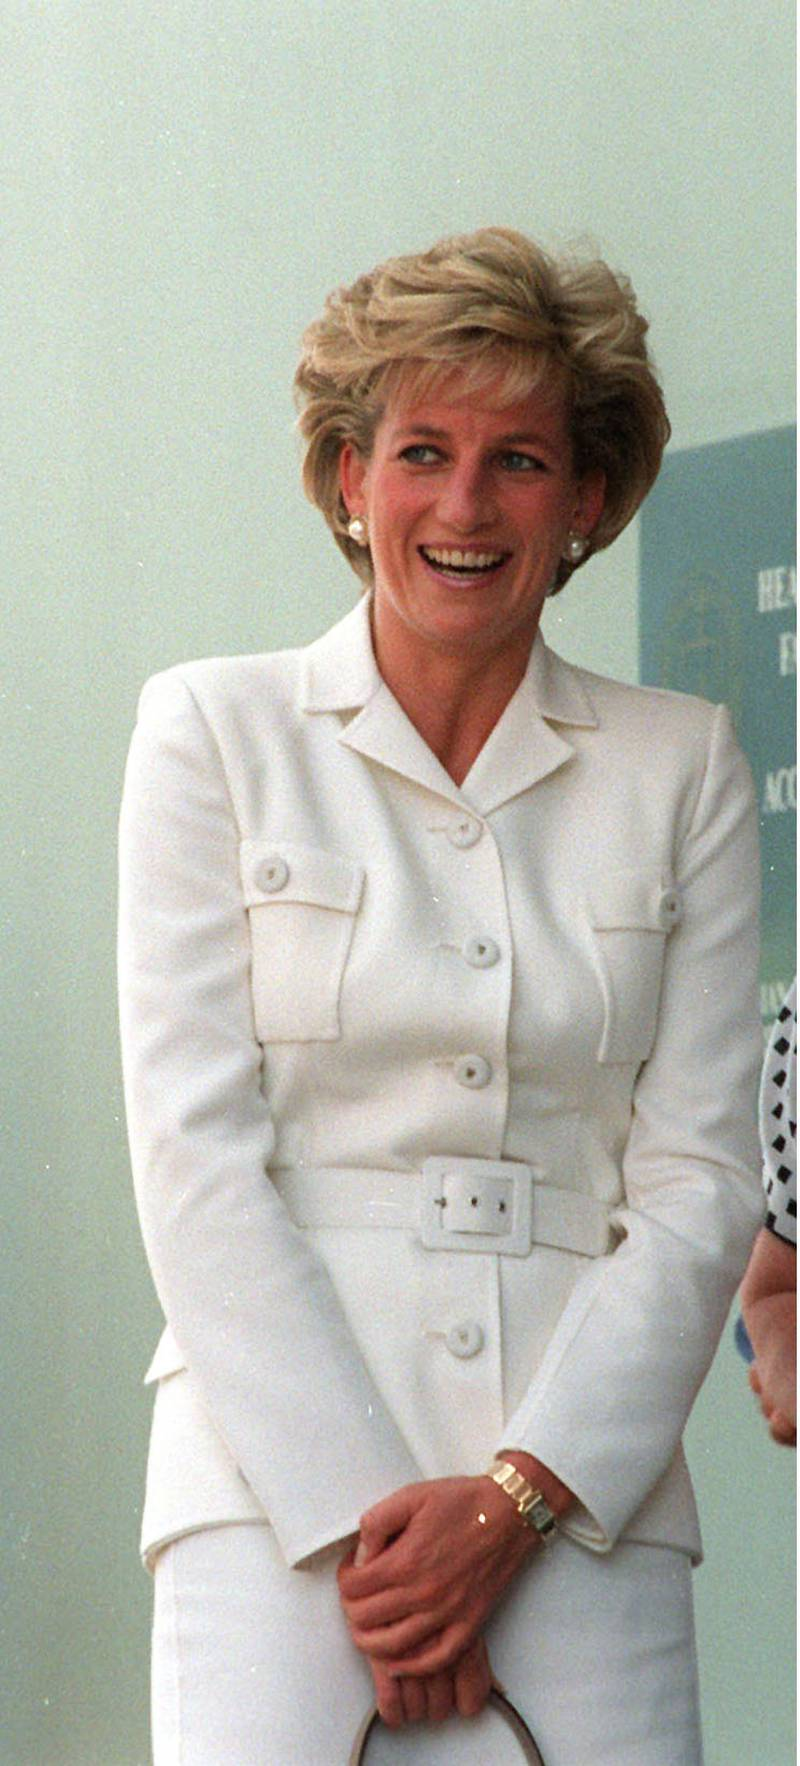 NOV 1996 - DIANA, PRINCESS OF WALES ARRIVING AT THE SACRED HEART HOSPICE IN SYDNEY. (Photo by Patrick Riviere/Getty Images)